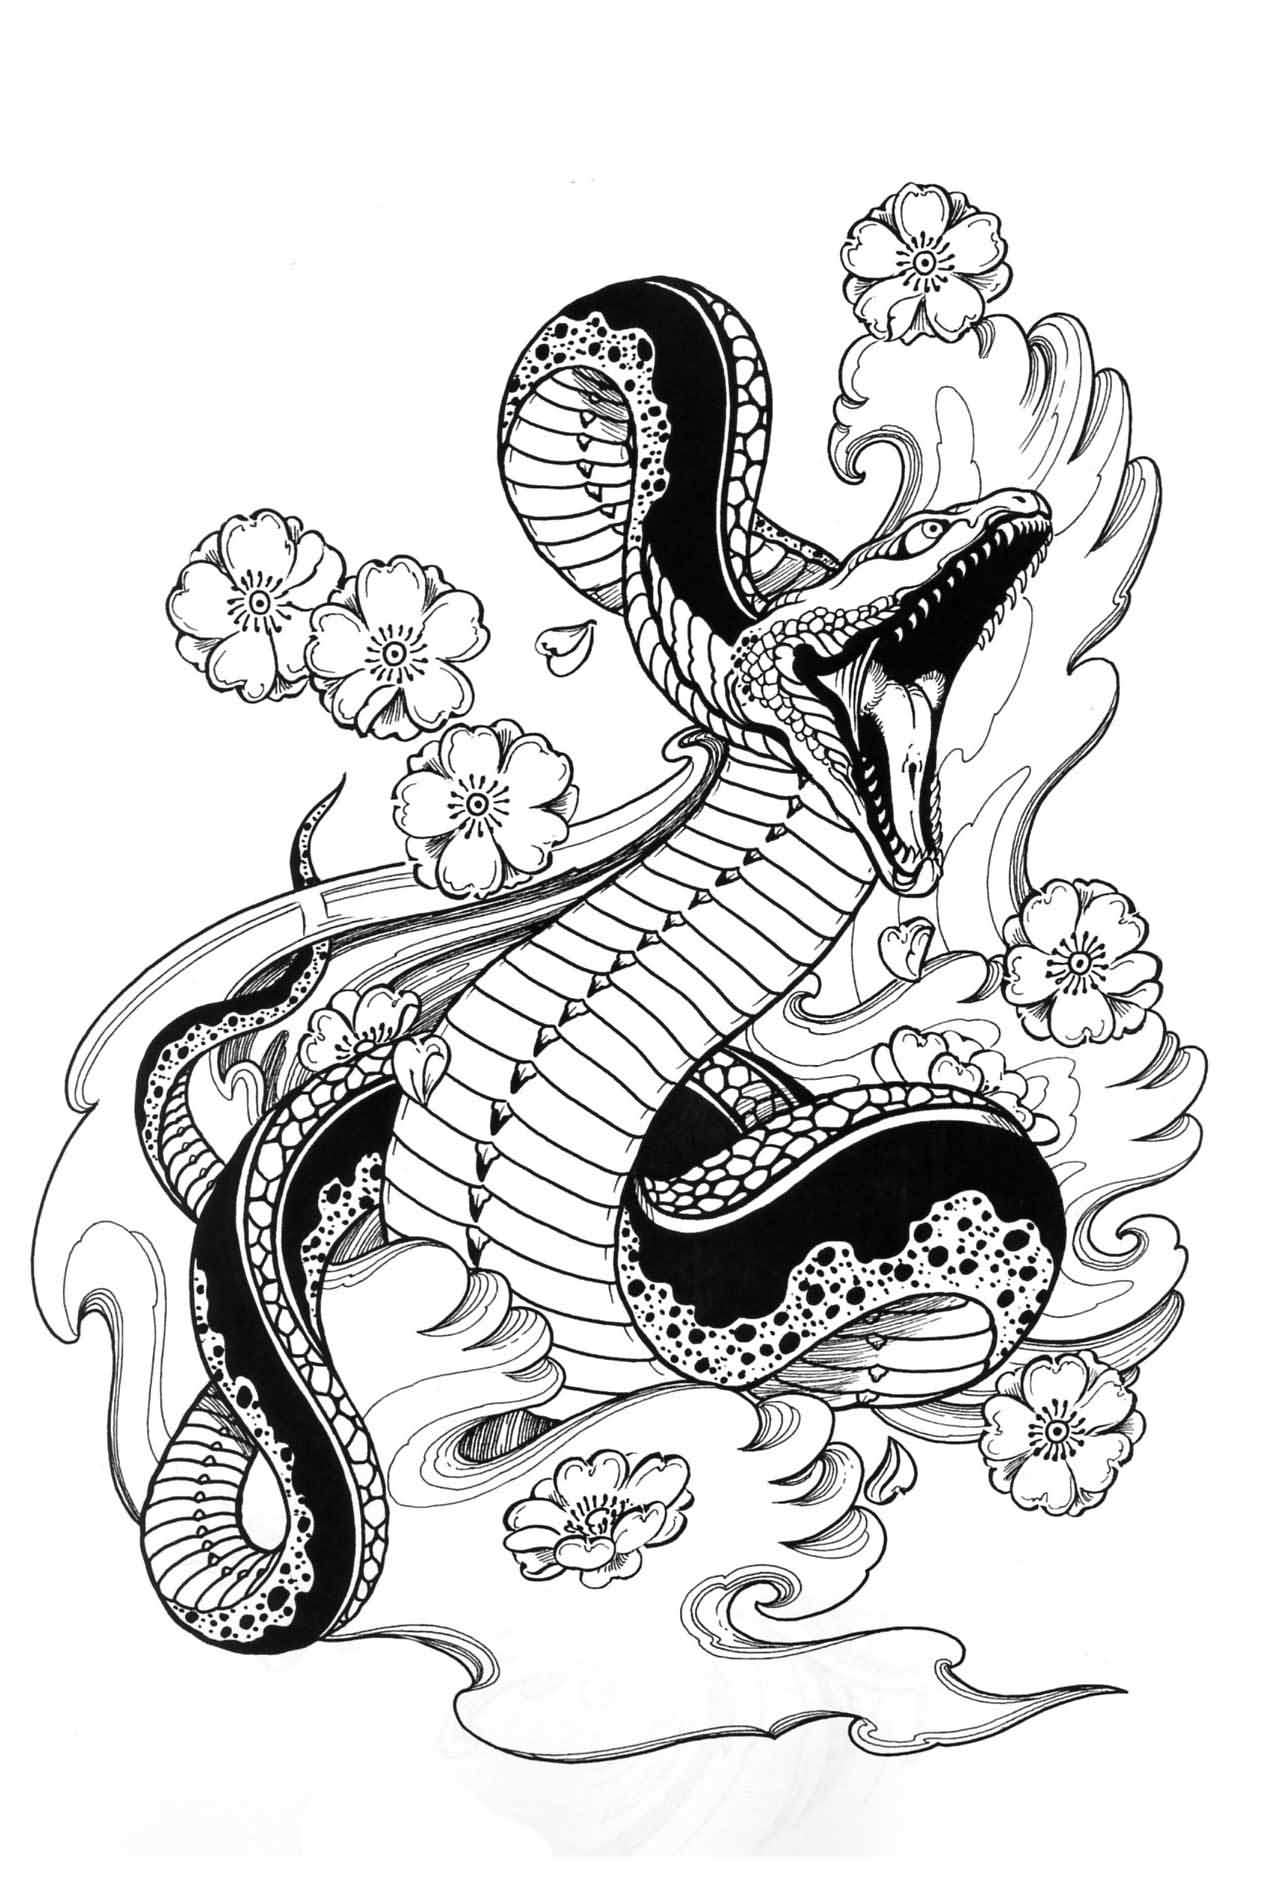 Black Ink Snake With Flowers Tattoo Stencil